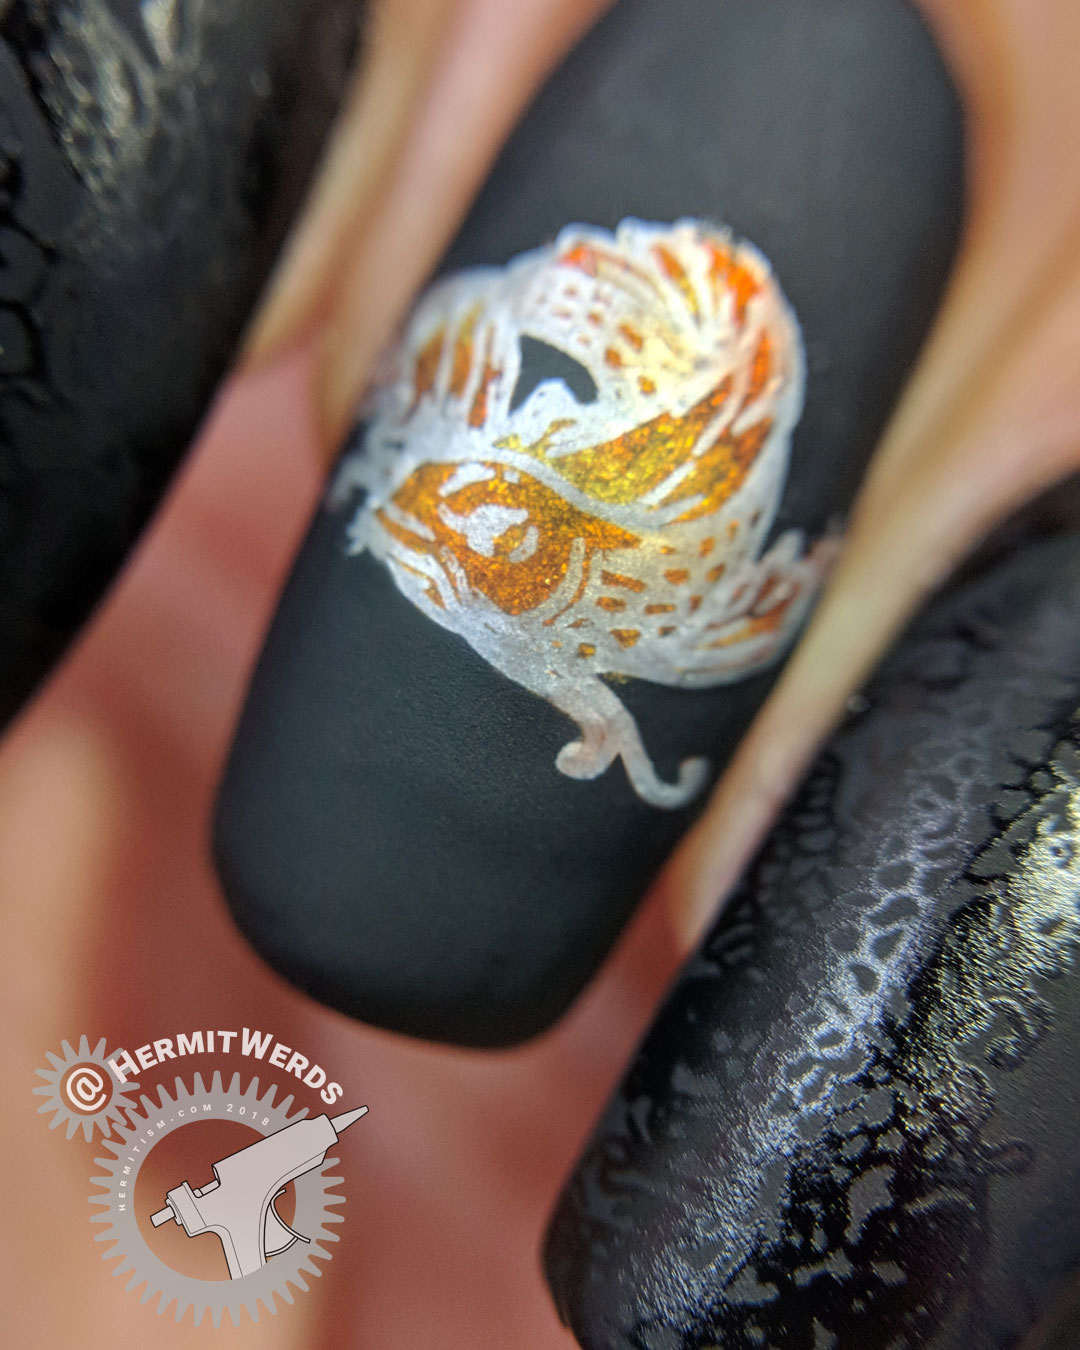 The Fishery - Hermit Werds - matte black nail art with a golden koi fish and glossy stamping